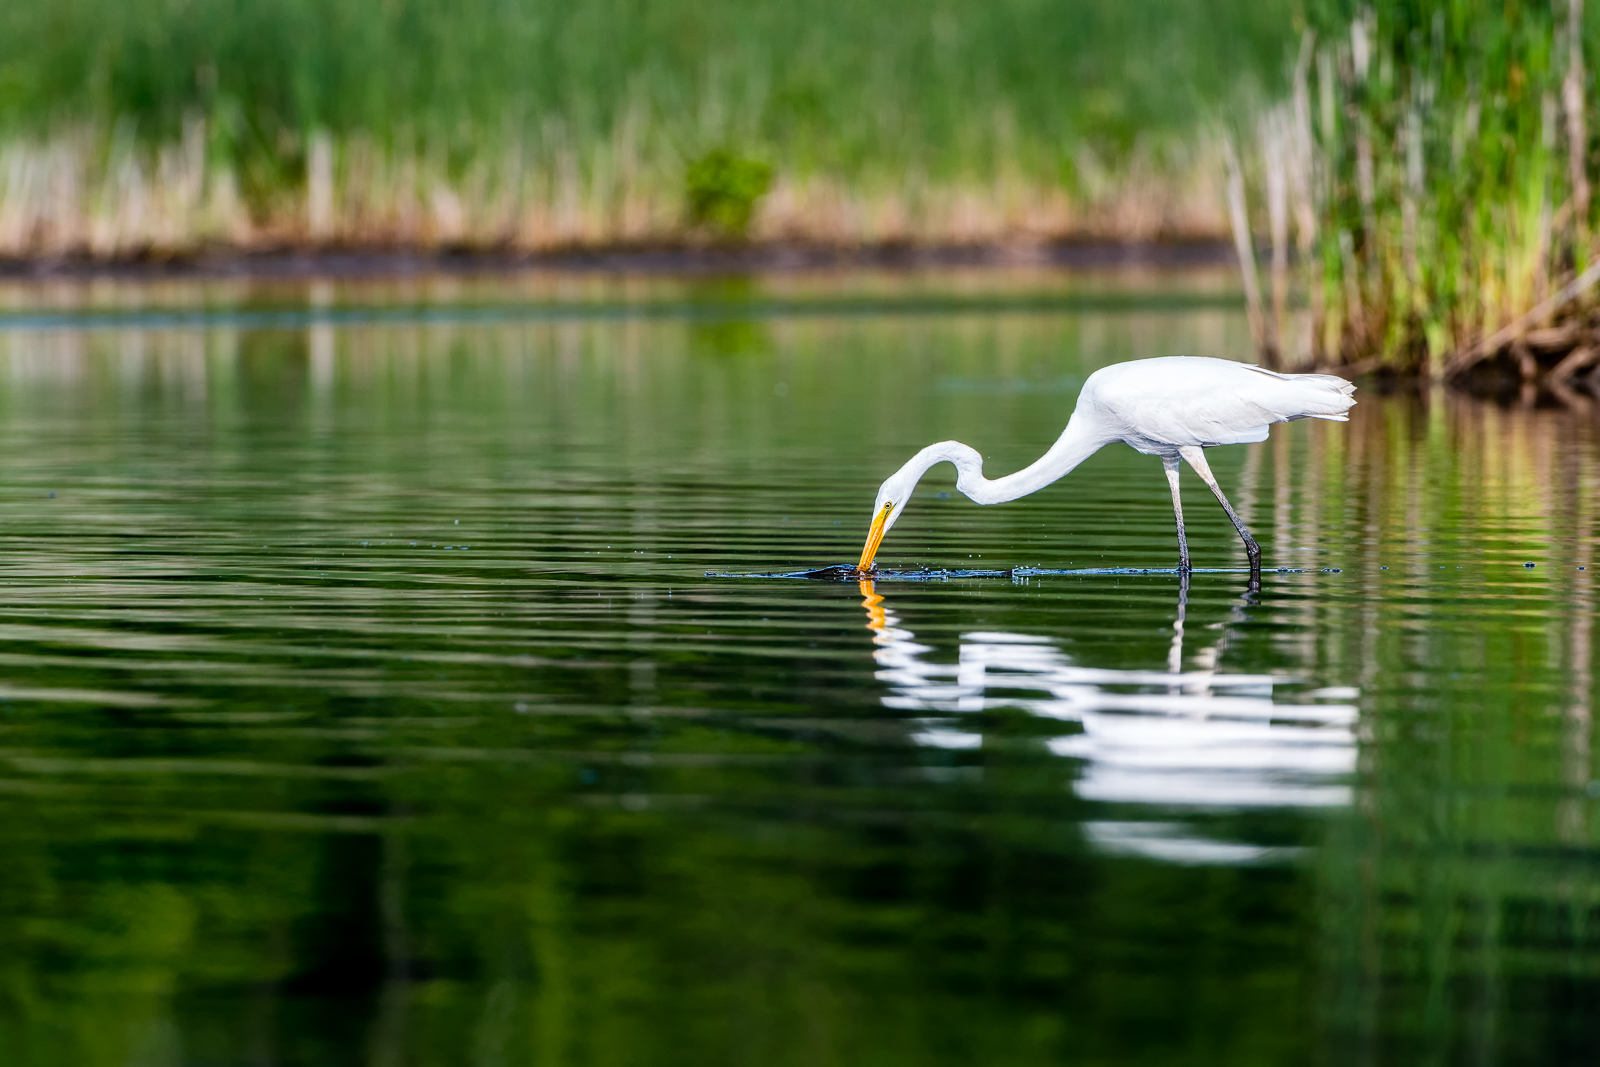 Great Egret Fishing for Breakfast